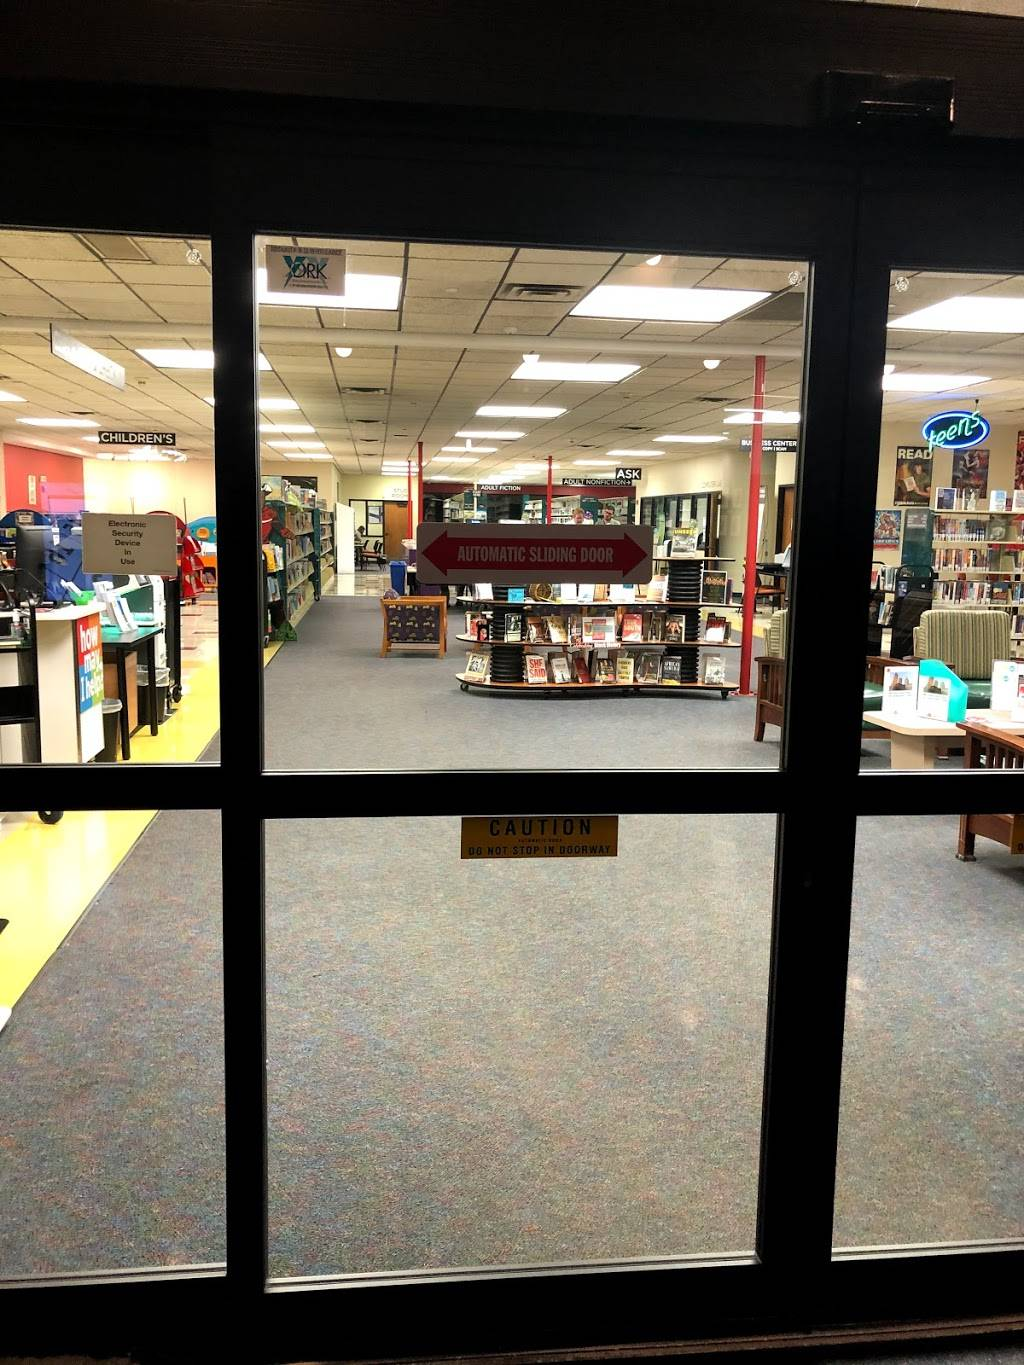 Rudisill Regional Library - library  | Photo 6 of 10 | Address: 1520 N Hartford Ave, Tulsa, OK 74106, USA | Phone: (918) 549-7323